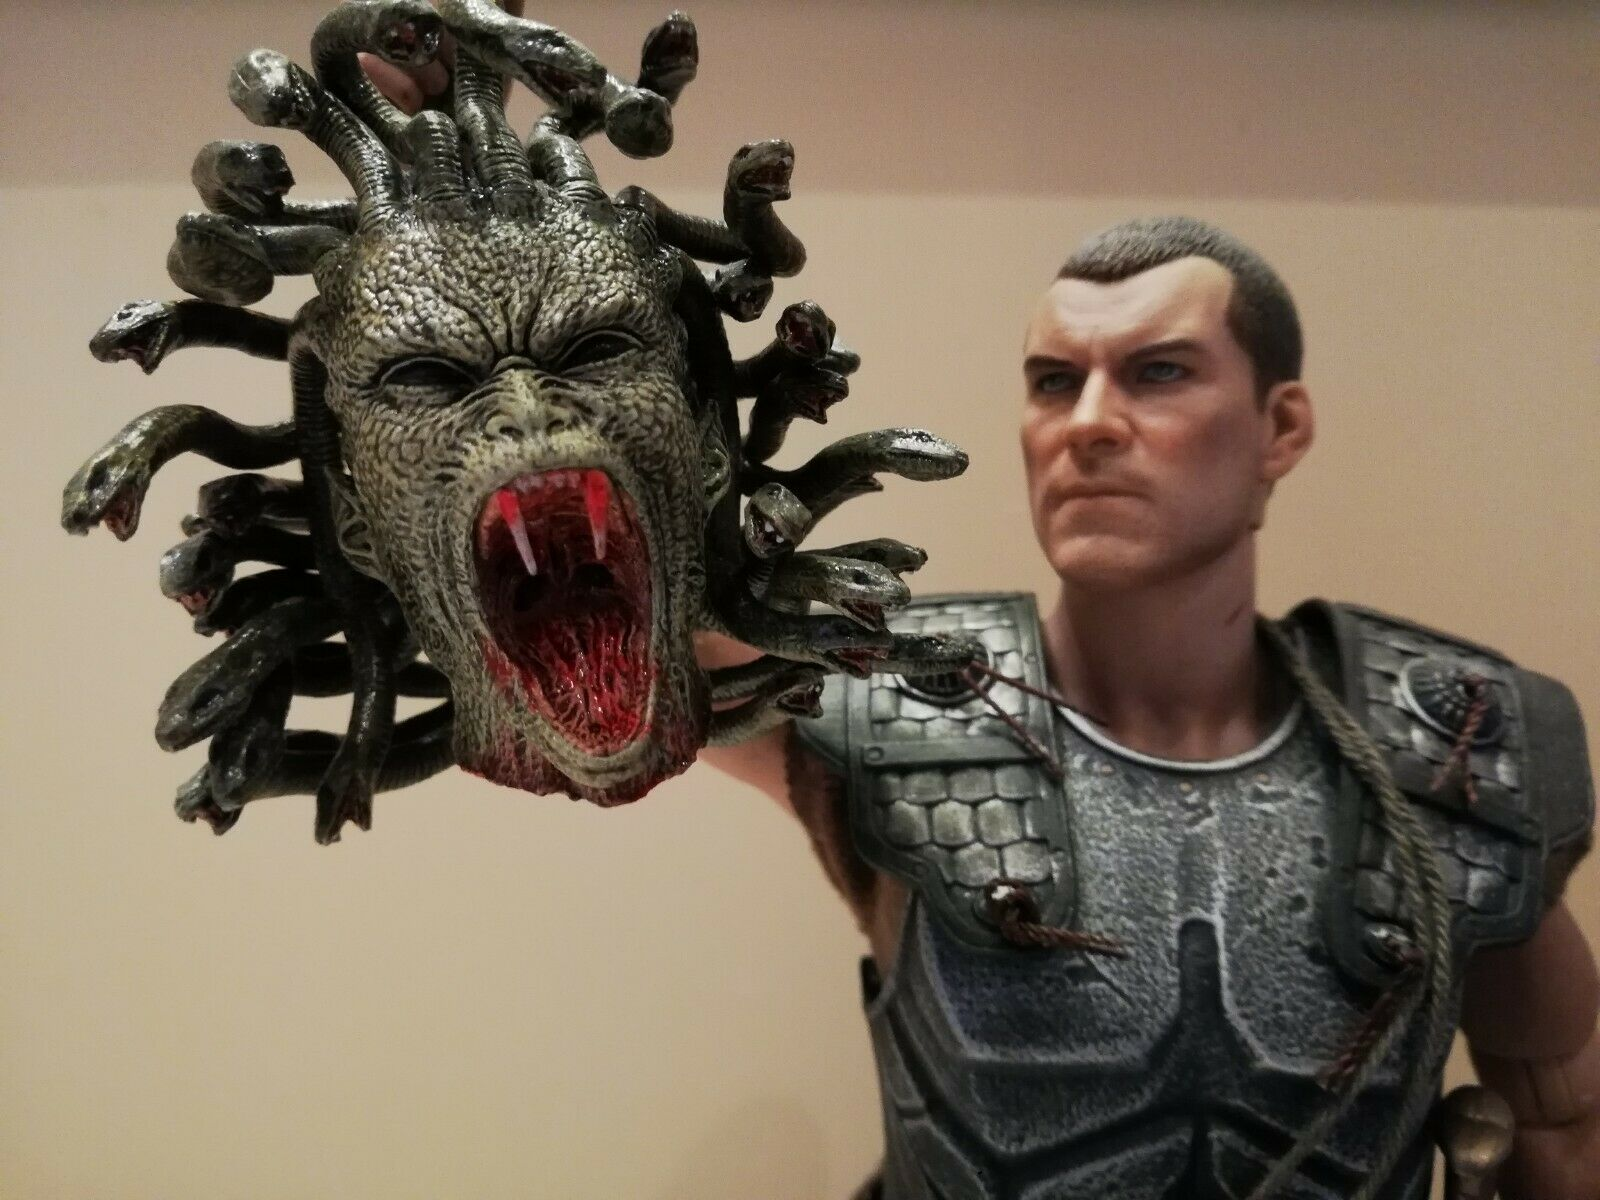 Hot Toys Perseus wrath of the titans figure 1 6